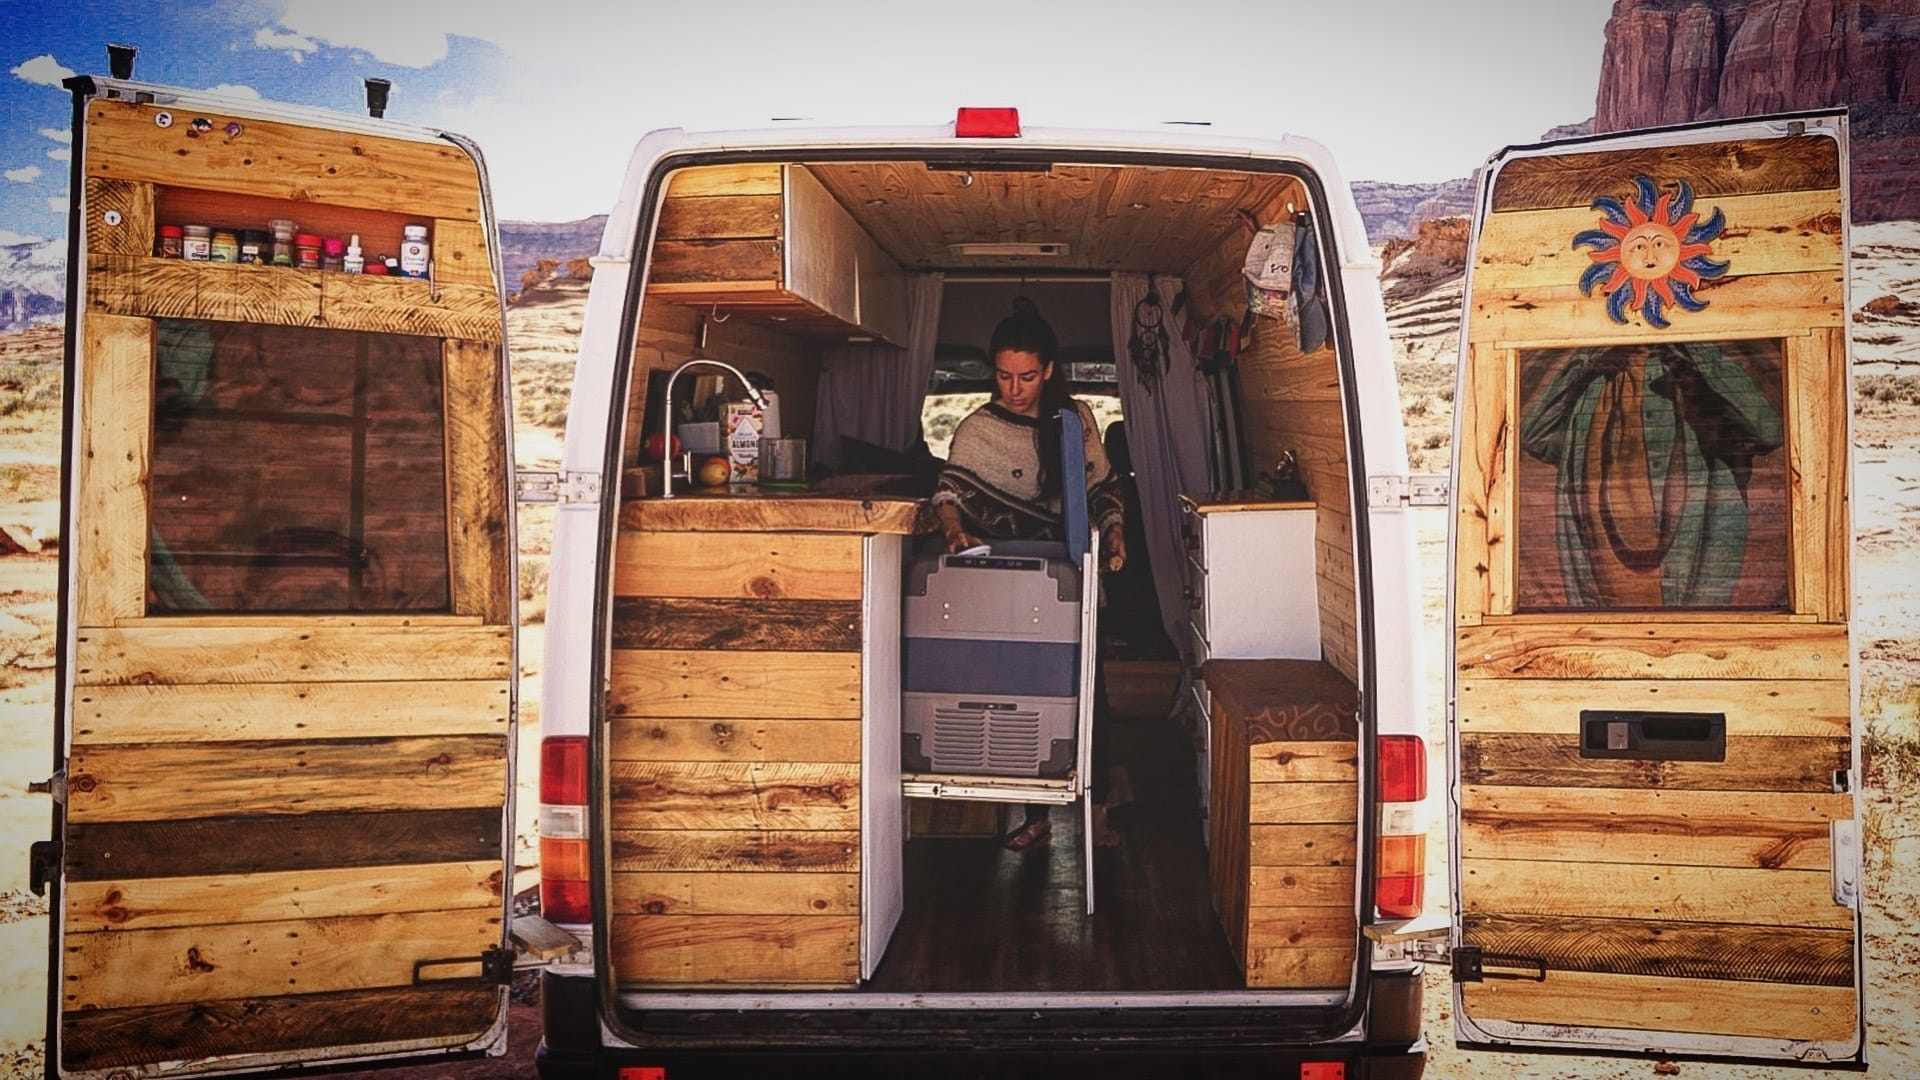 Is van life sustainable? Check out this blog post for environmentally-friendly tips on how to reduce your impact as an eco-friendly van lifer!